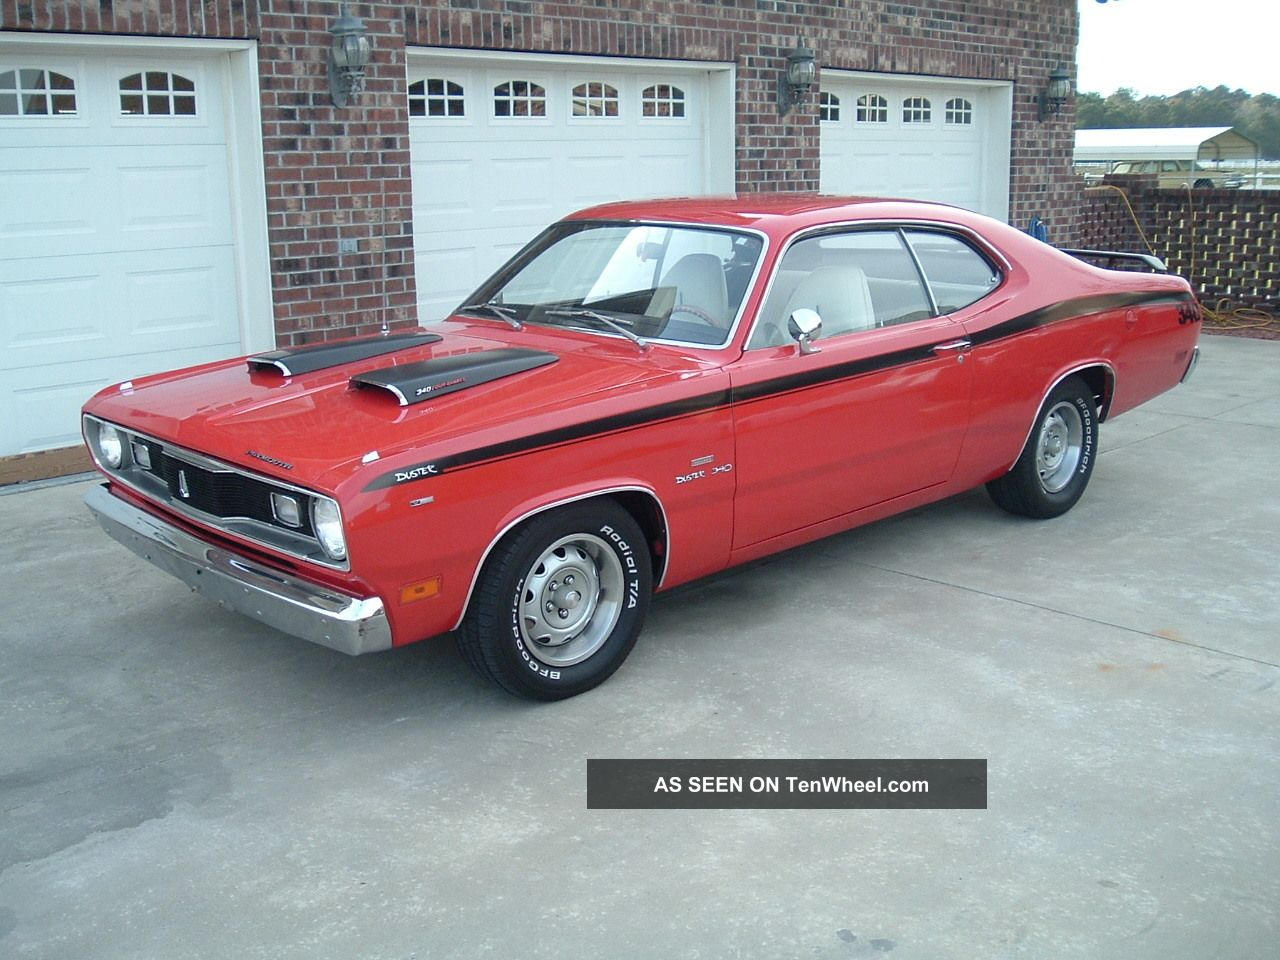 1970 Plymouth Duster - 340 A / T Duster photo